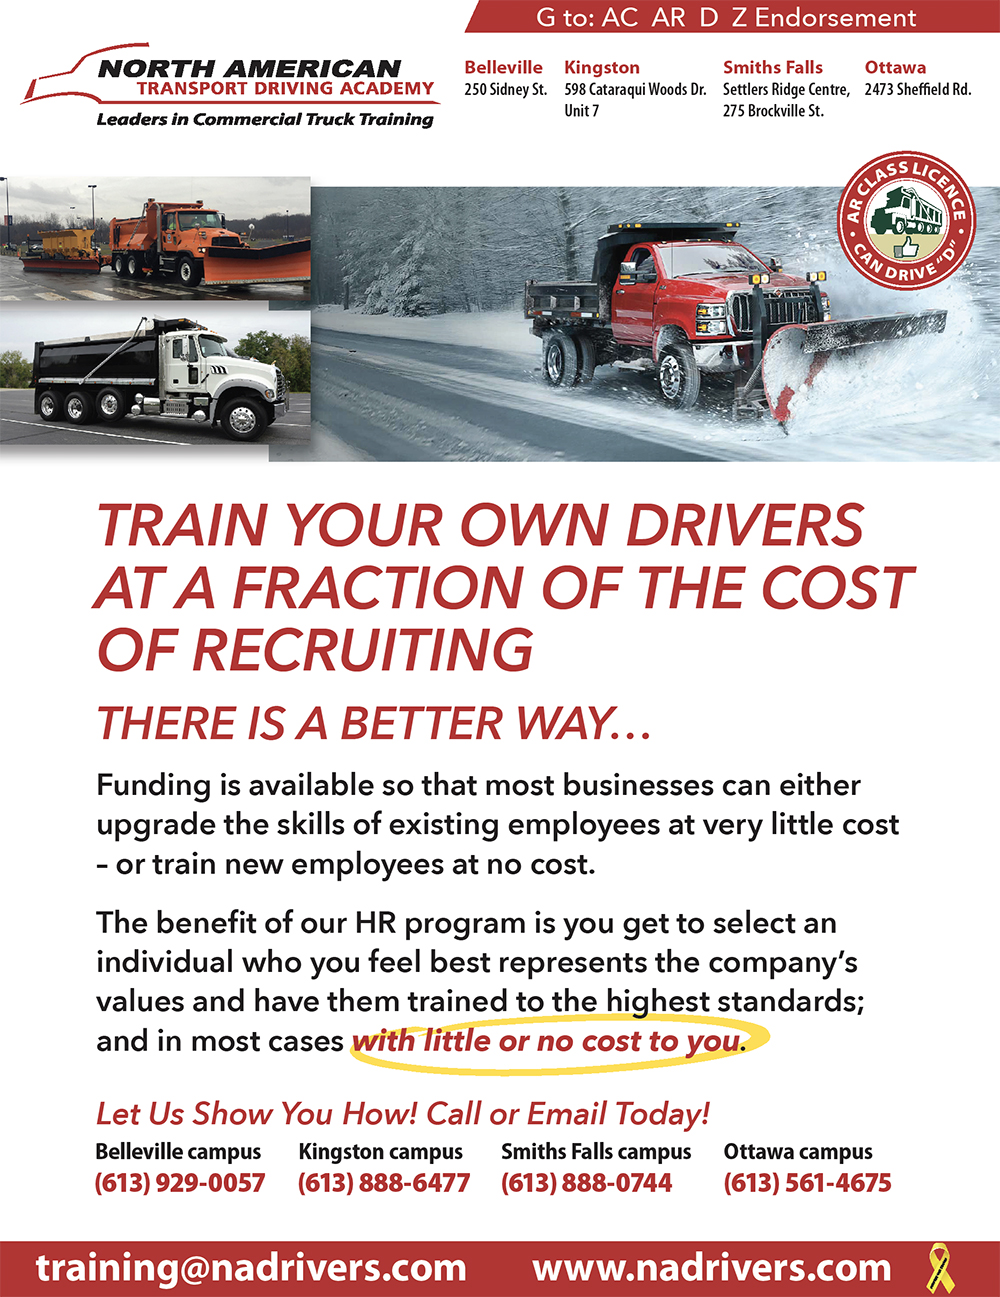 Train your own drivers at a fraction of the cost of recruiting